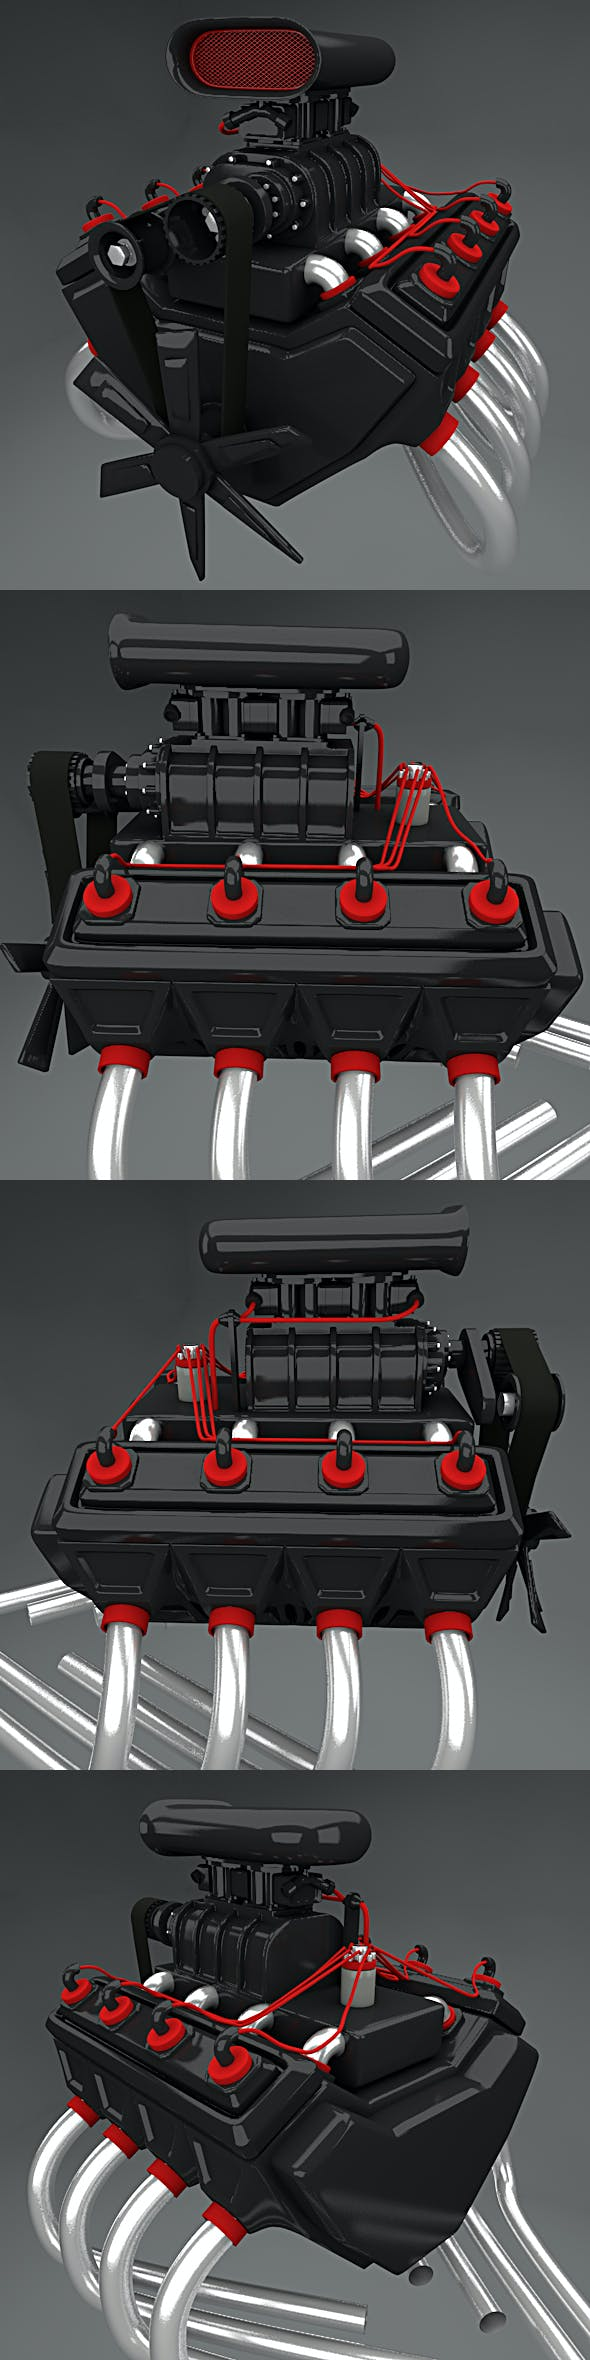 Car Engine 8 cylinders Full Edition - 3DOcean Item for Sale